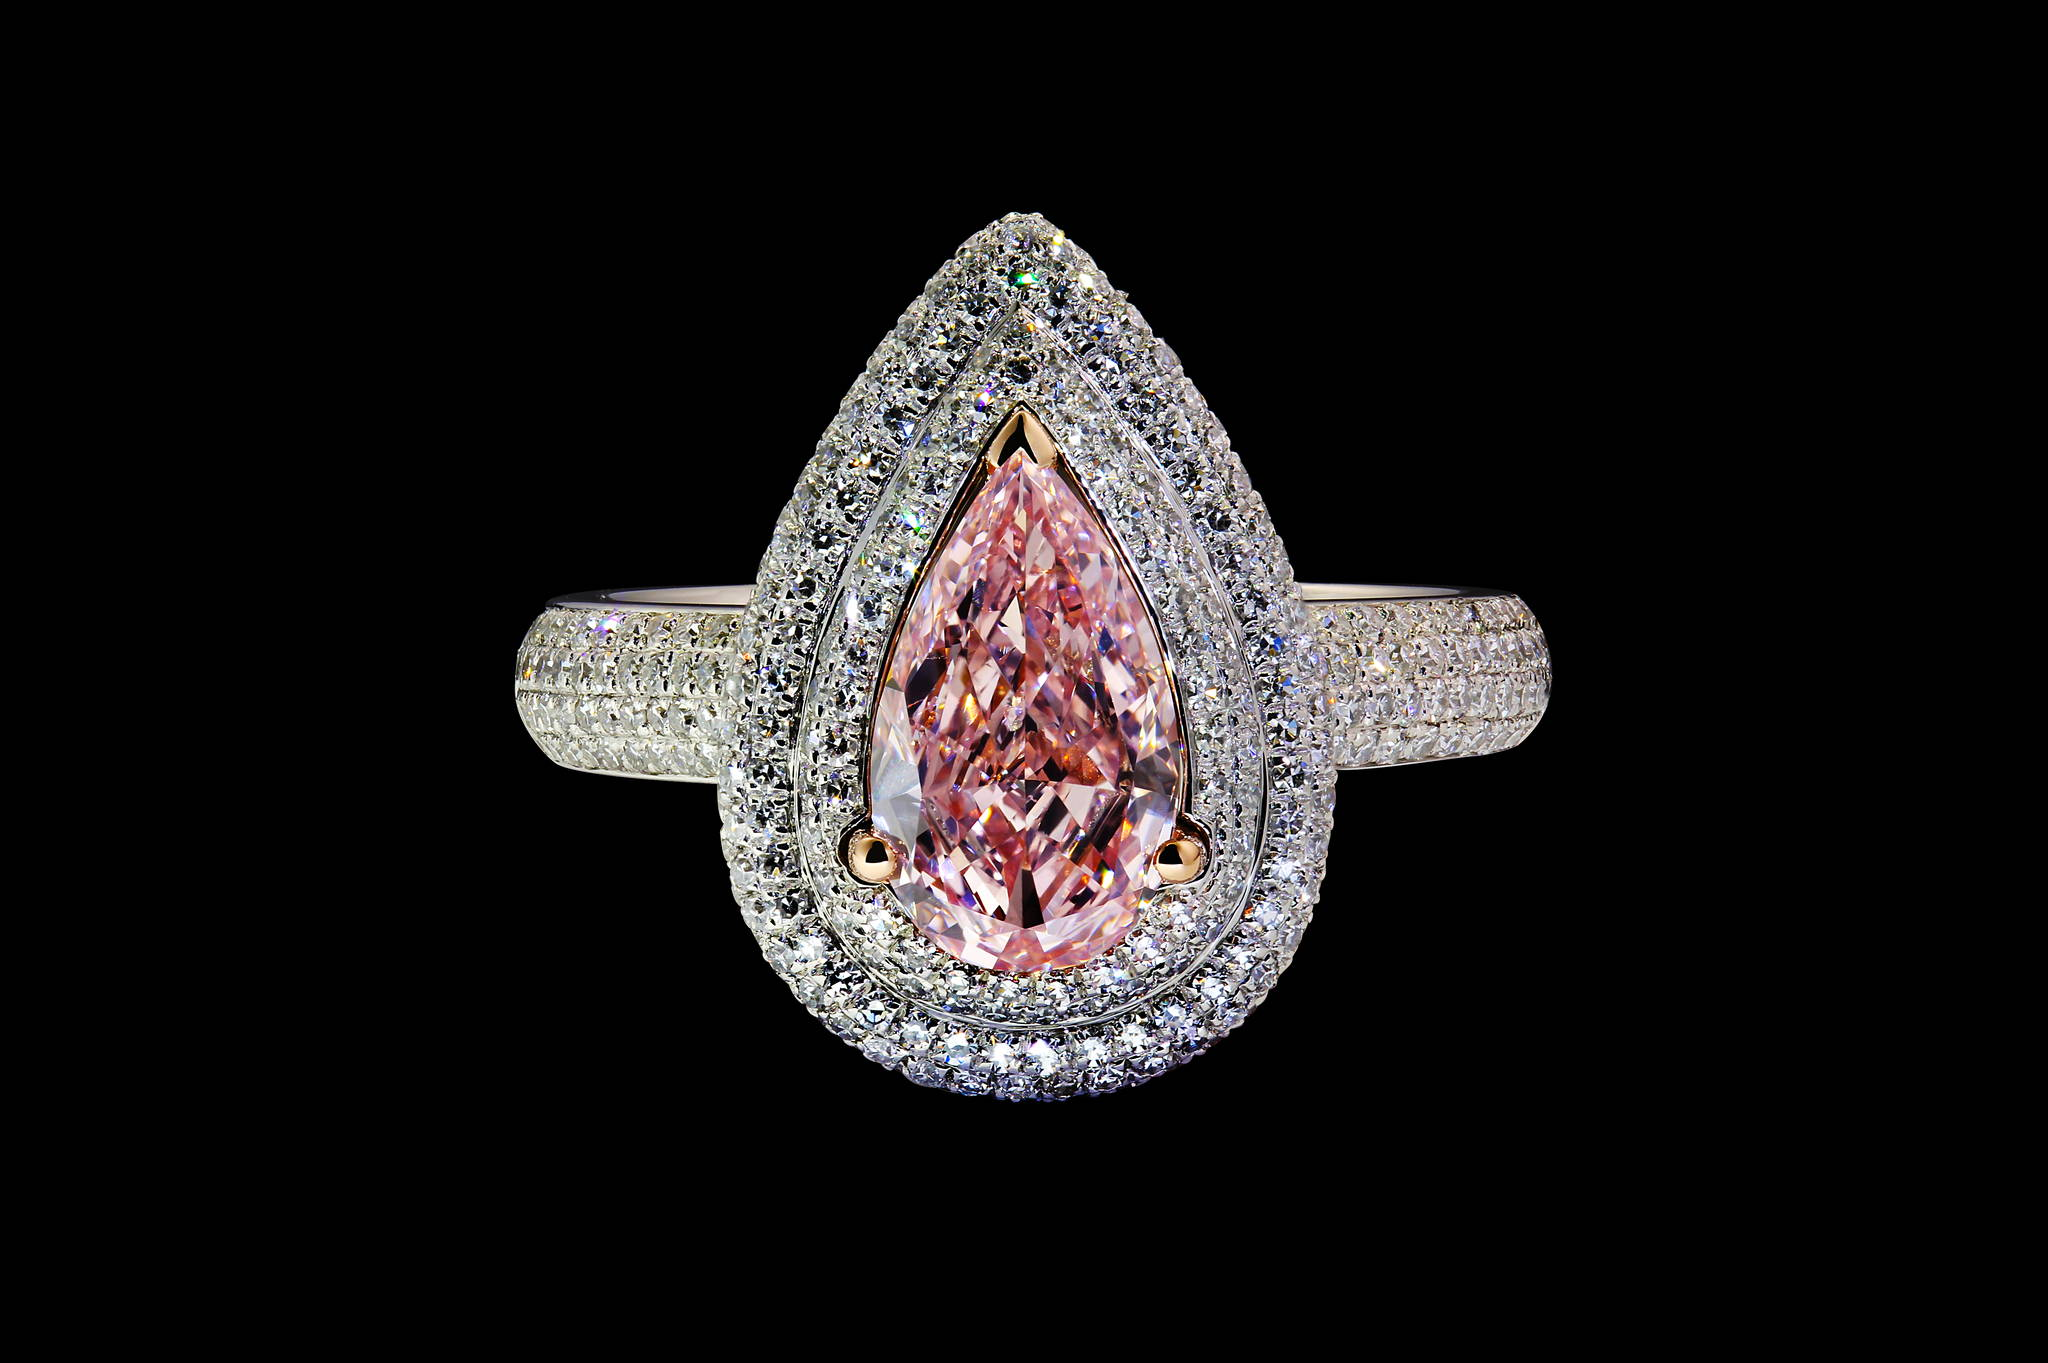 Vintage Style Pink Diamond Ring Top View